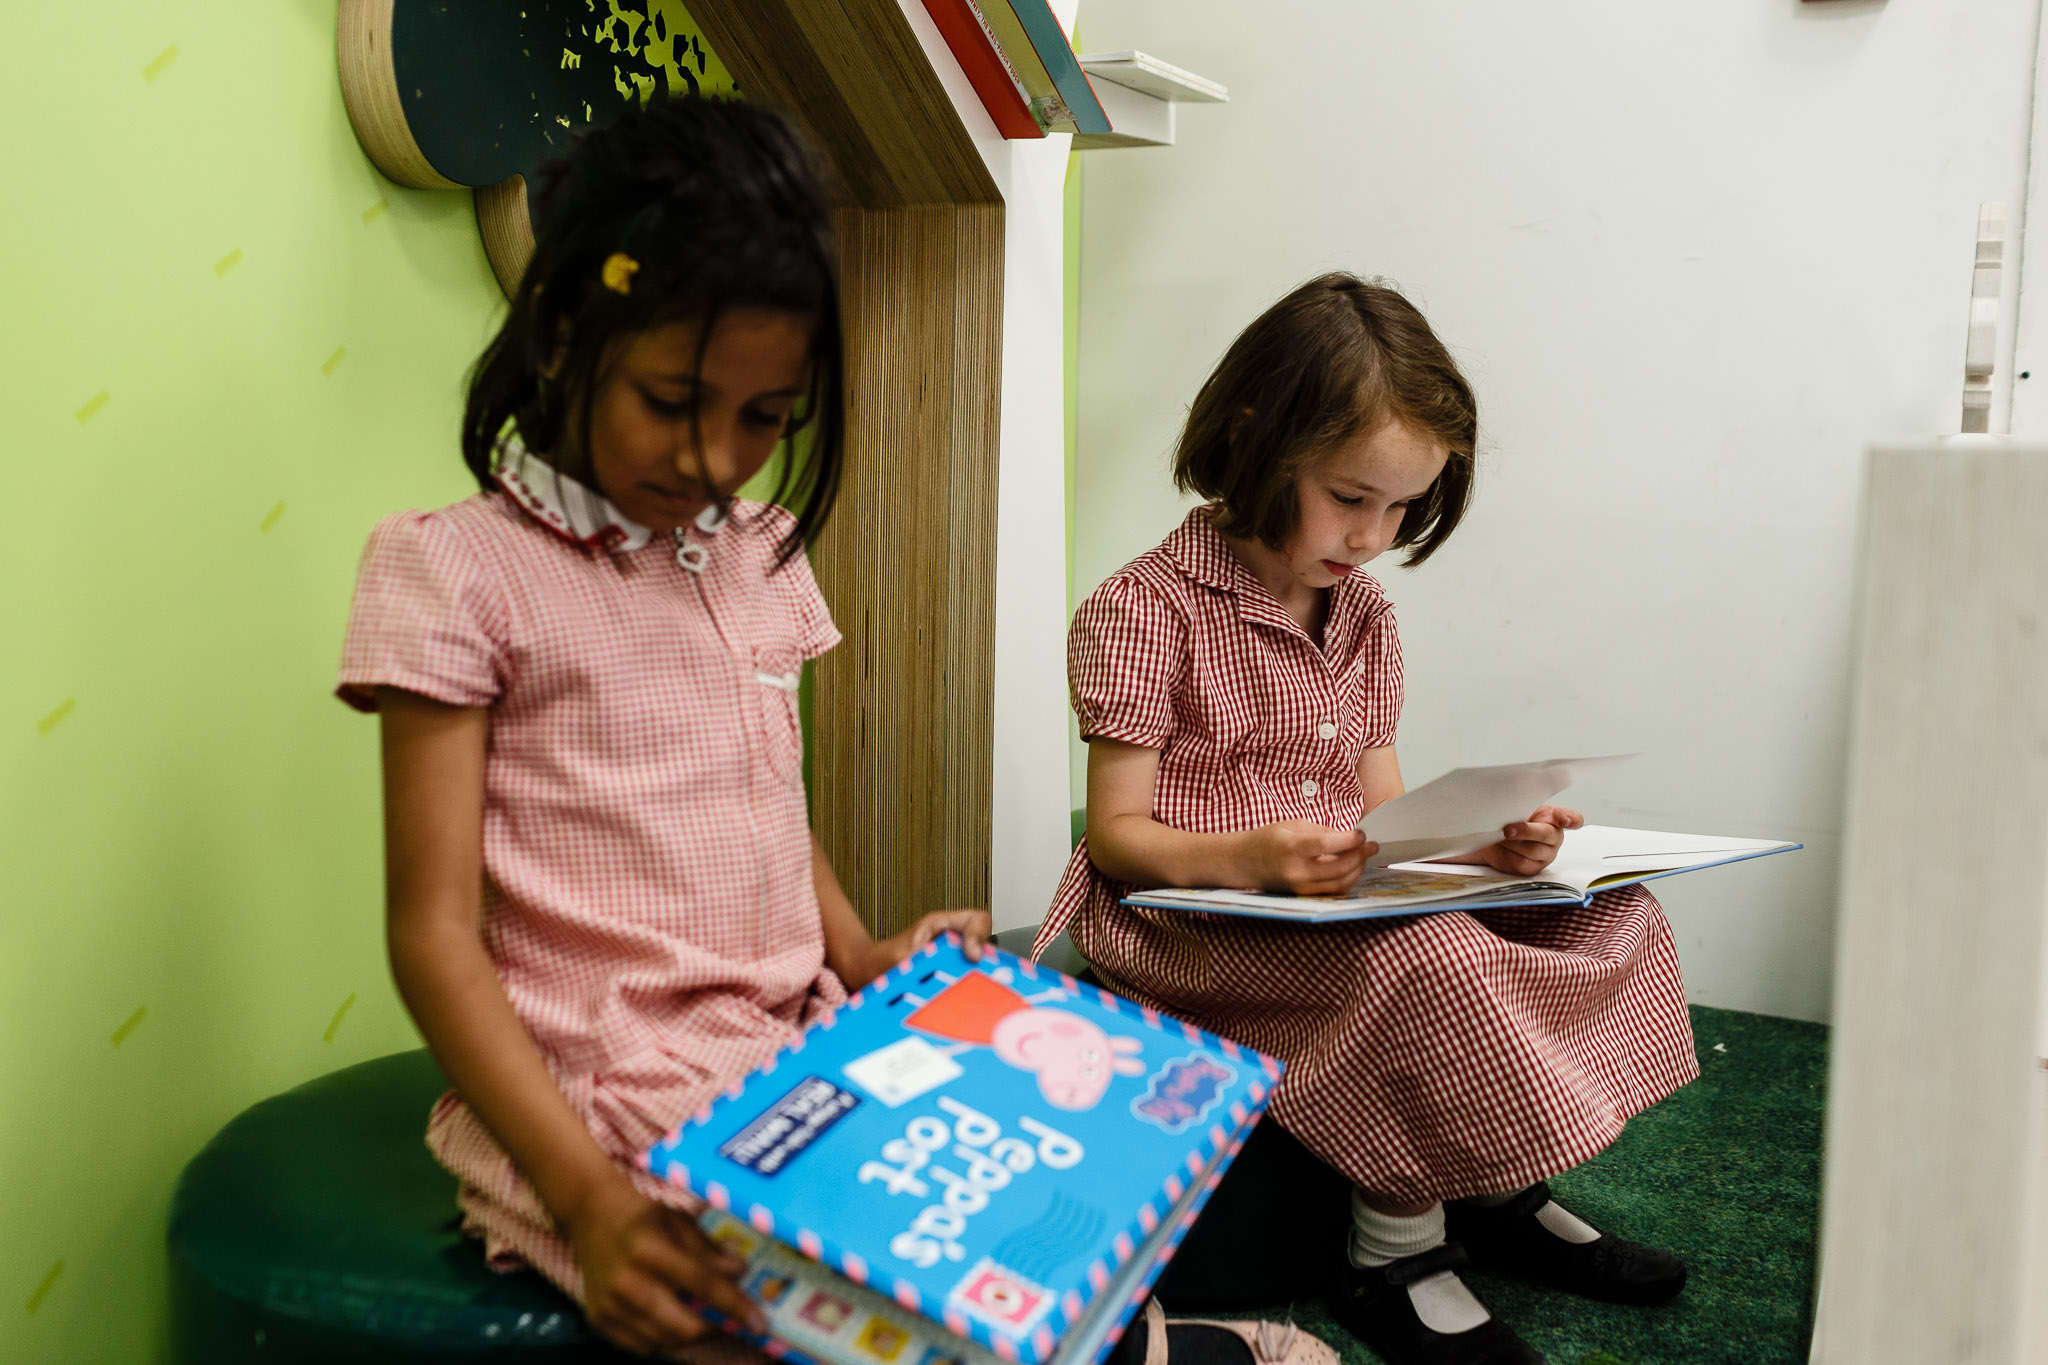 Reading corner - From classics like The Jolly Postman to current favourites, delve into stories about delivering the mail.